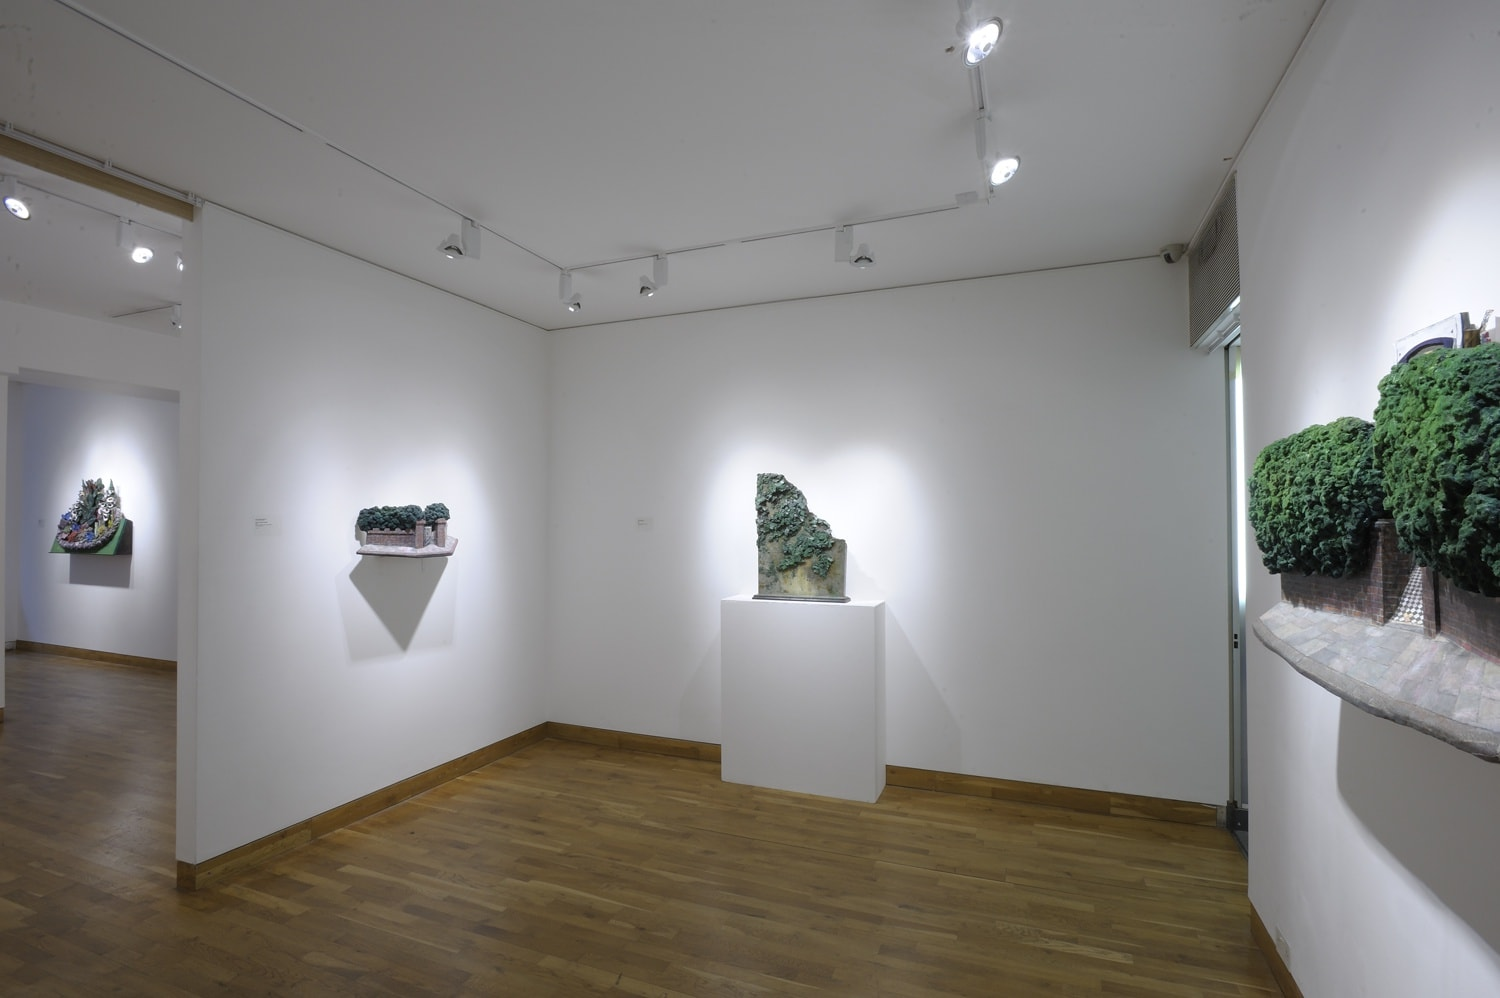 "<span class=""link fancybox-details-link""><a href=""/exhibitions/65/works/image_standalone137/"">View Detail Page</a></span><p>IVOR ABRAHAMS RA 